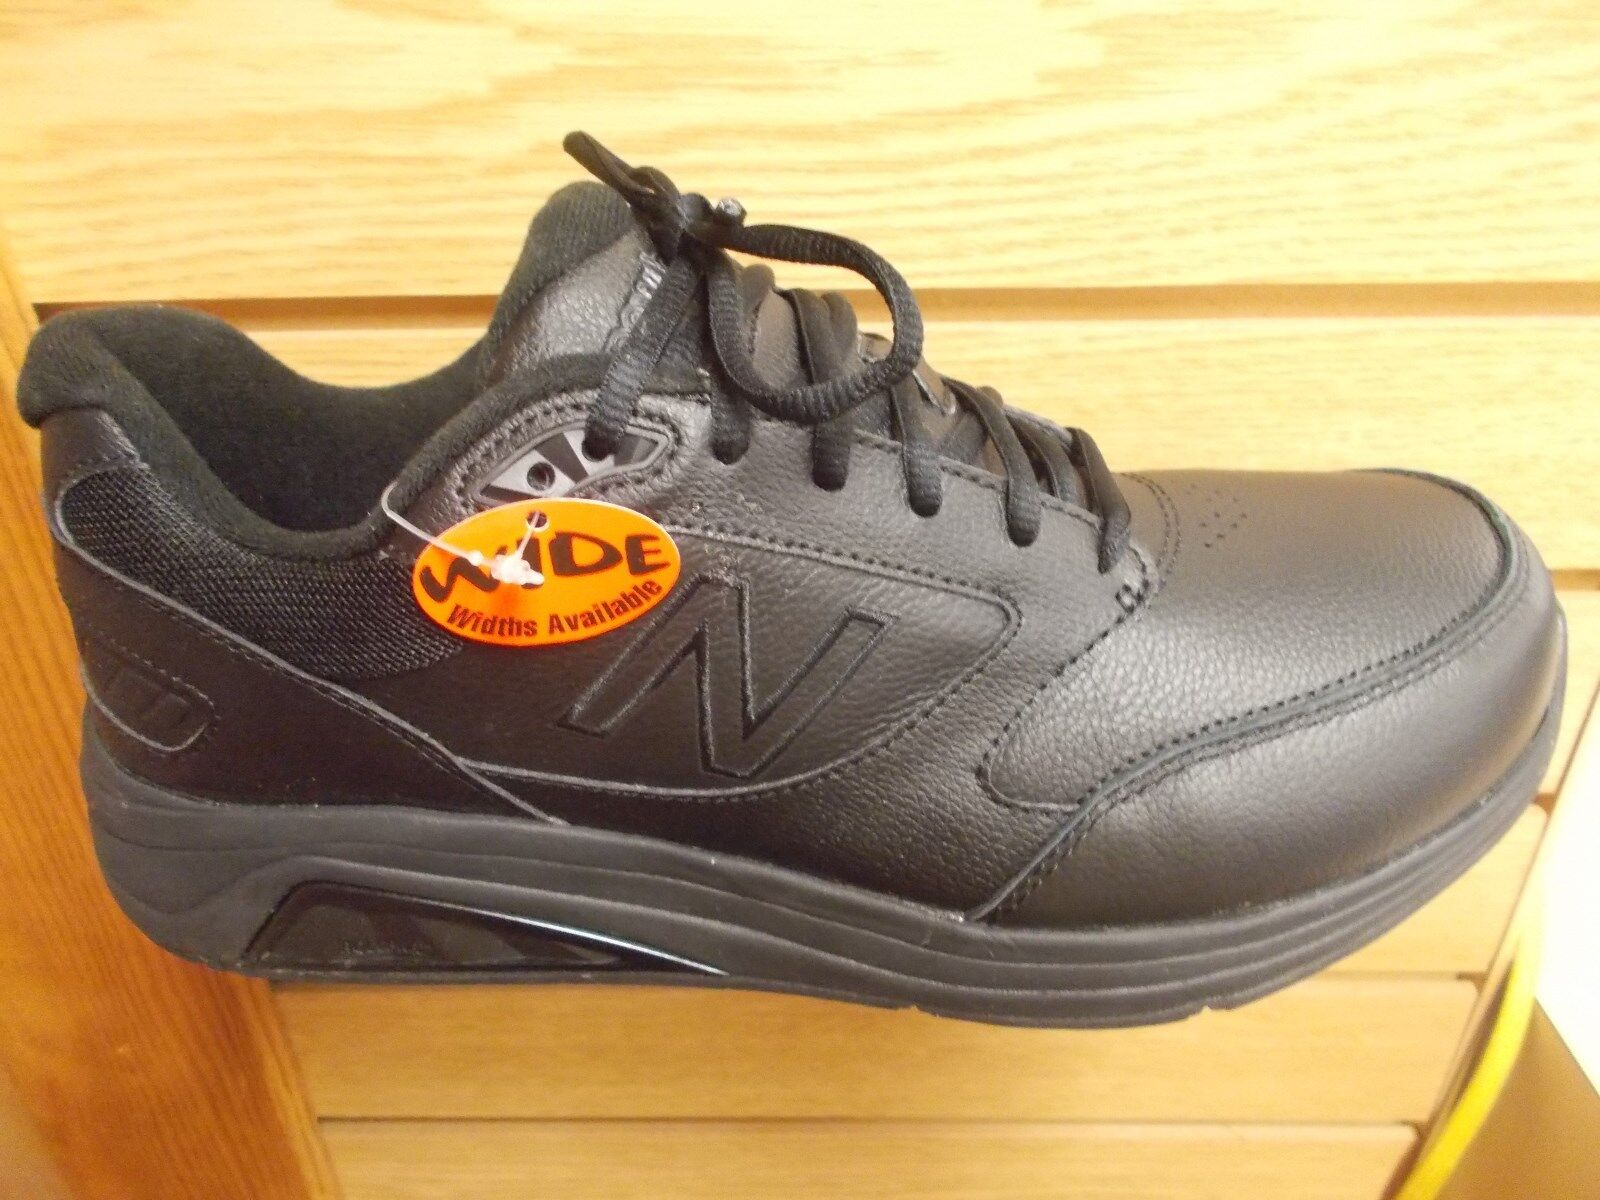 NEW NEW NEW BALANCE MEN'S MW928BK2 WALKING SHOE EXTRA WIDE 4E SIZES 8.5 TO 13 NEW BLACK 9ce4ca